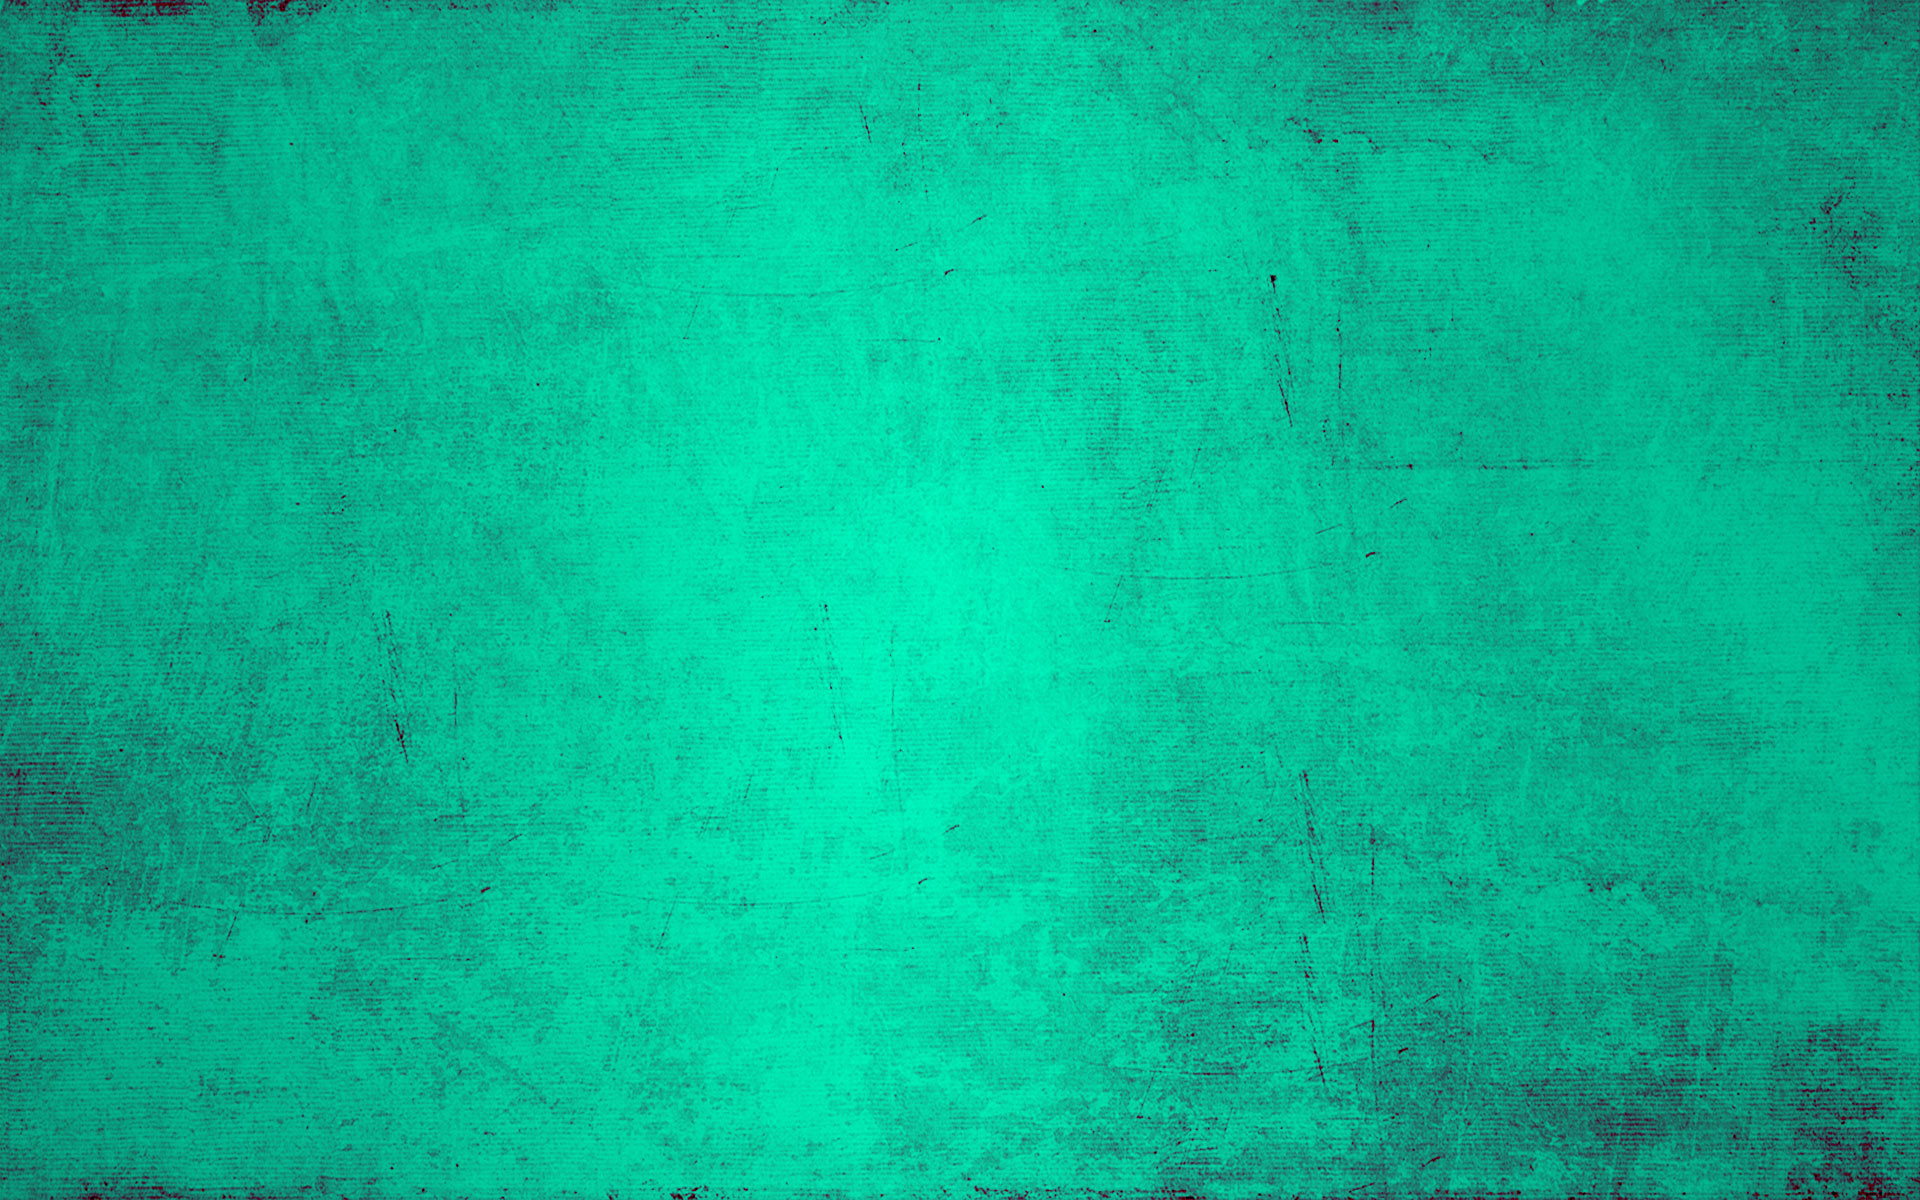 Grunge Turquoise Texture wallpapers Grunge Turquoise Texture stock 1920x1200